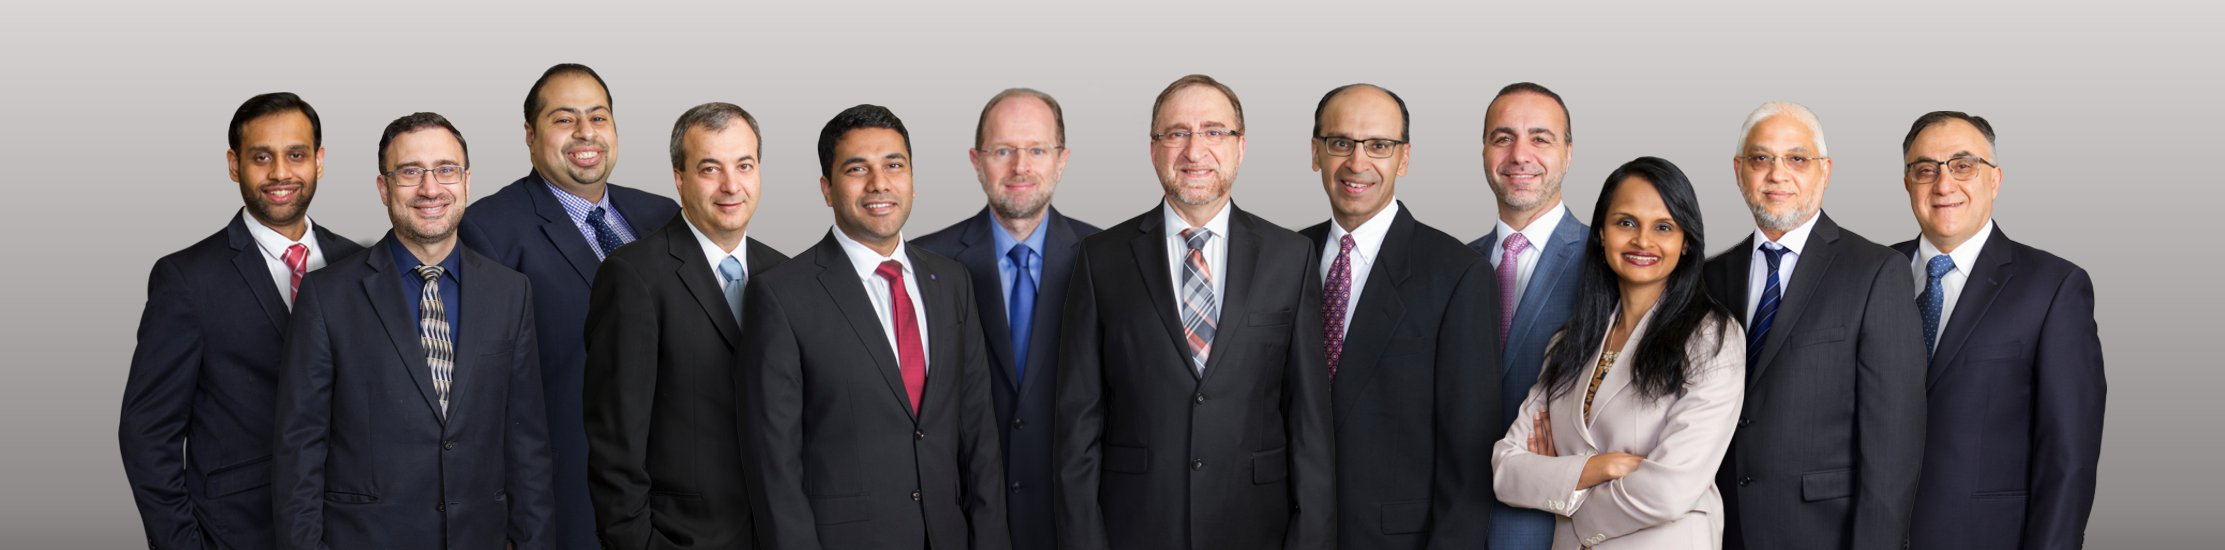 Our Physicians Group Photo